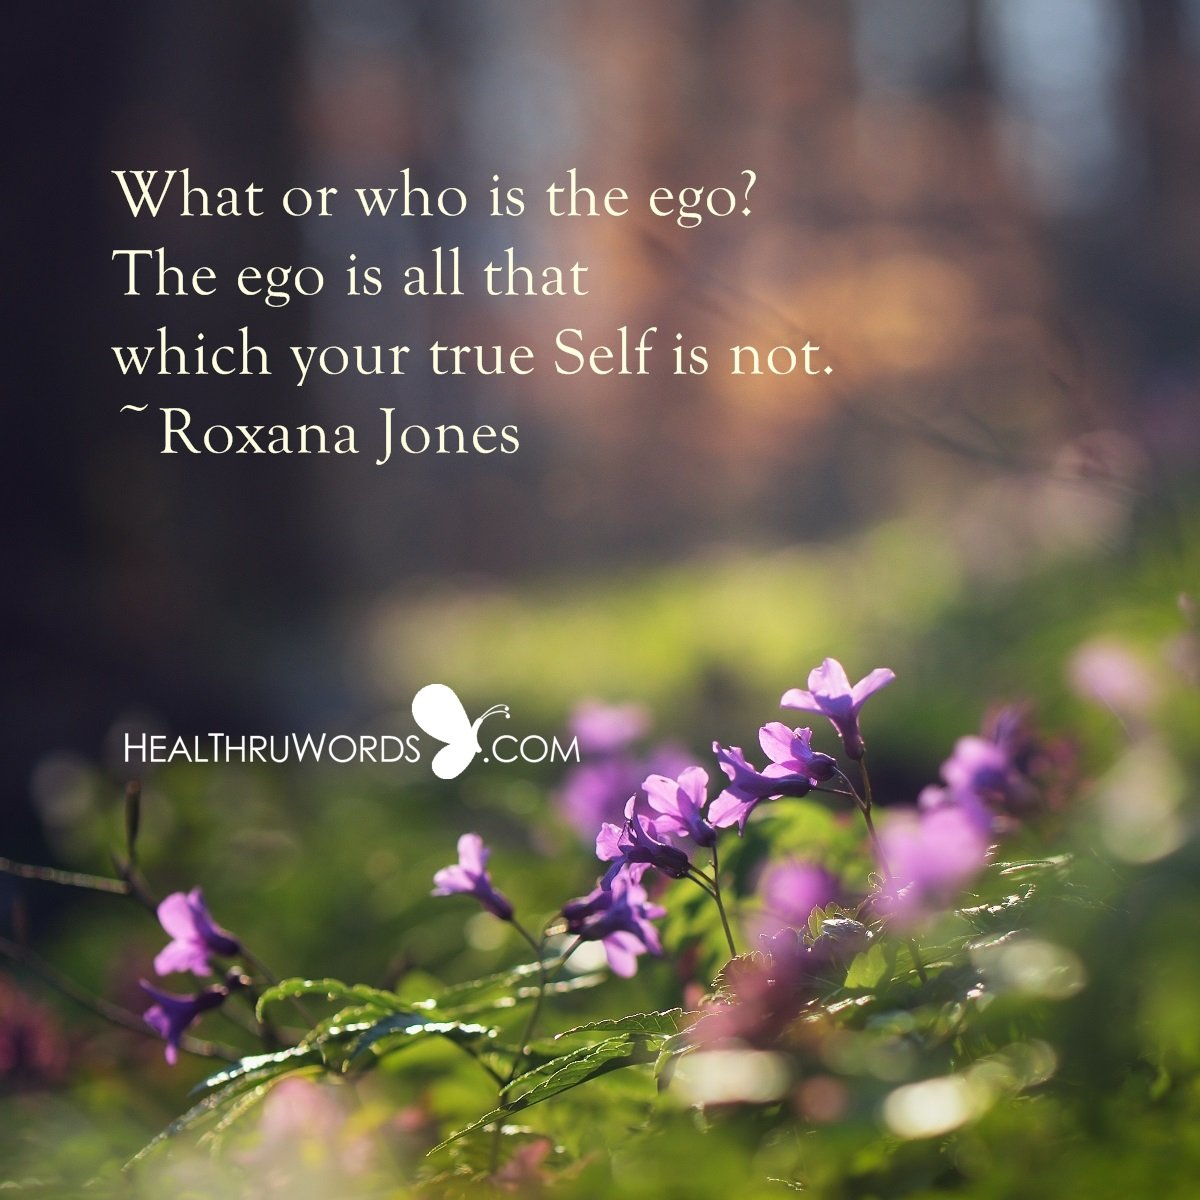 Inspirational Image: Between Ego and Self